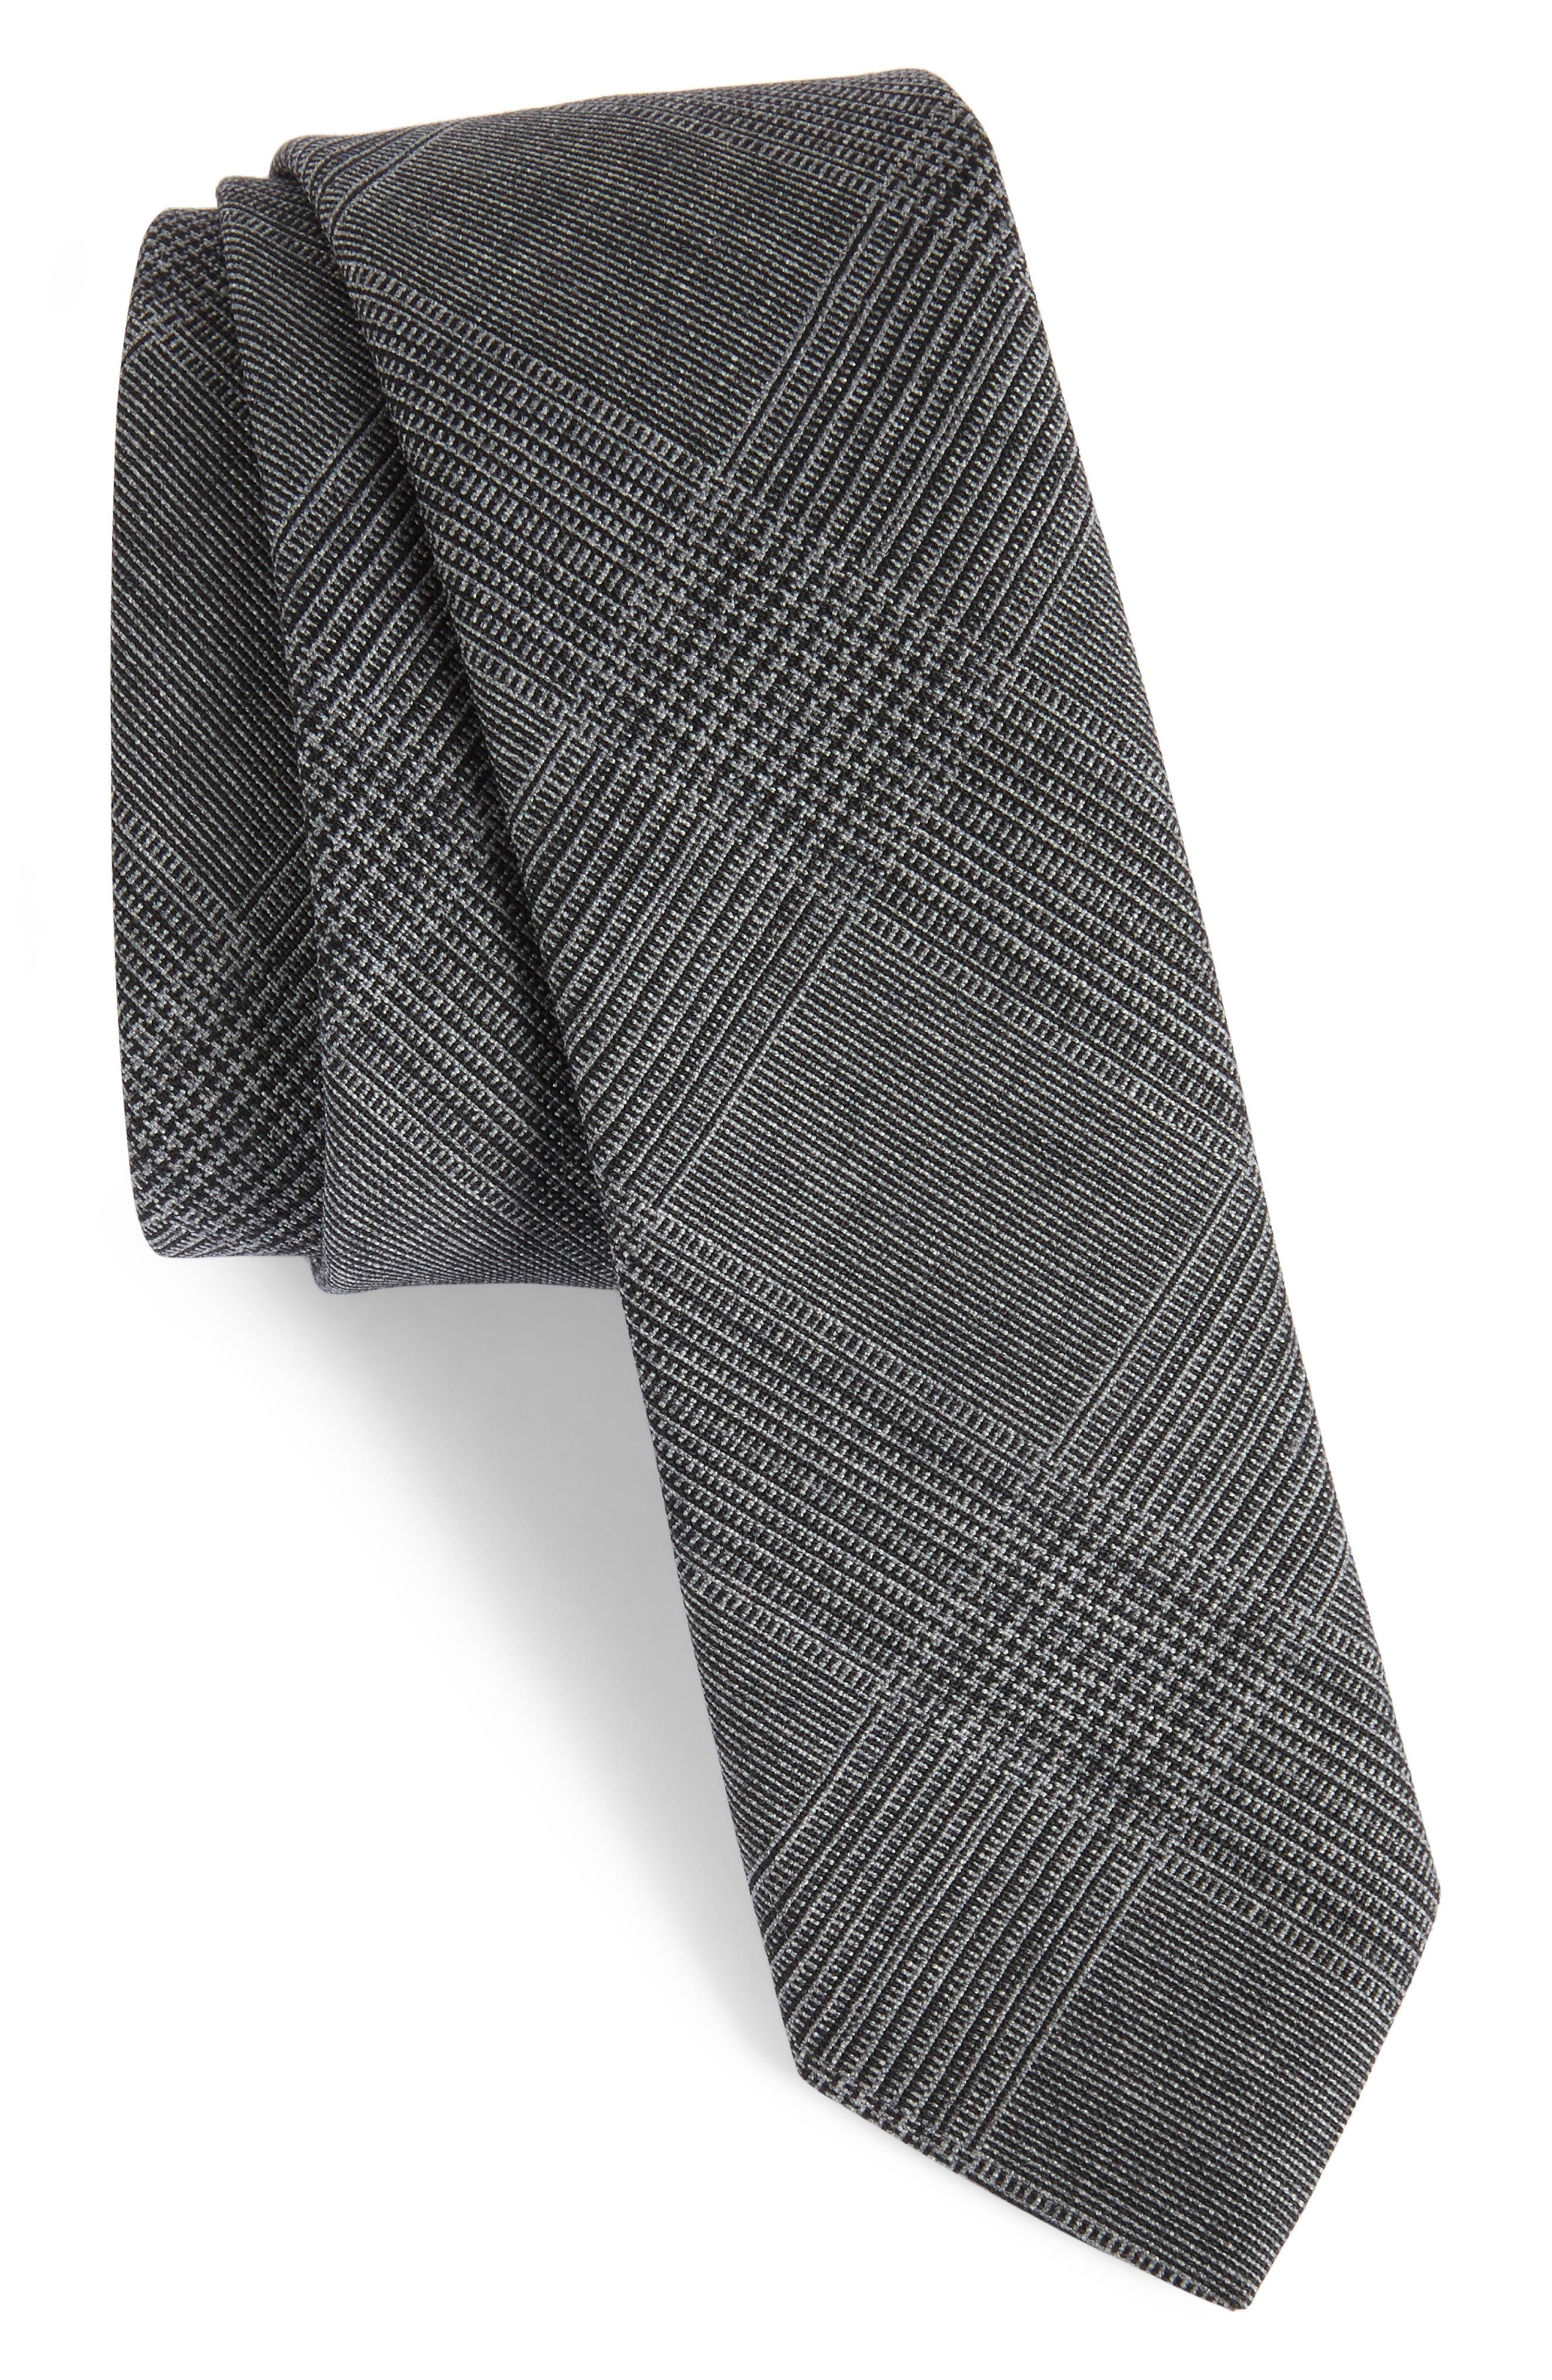 Glen Plaid Wool Skinny Tie,                         Main,                         color, CHARCOAL